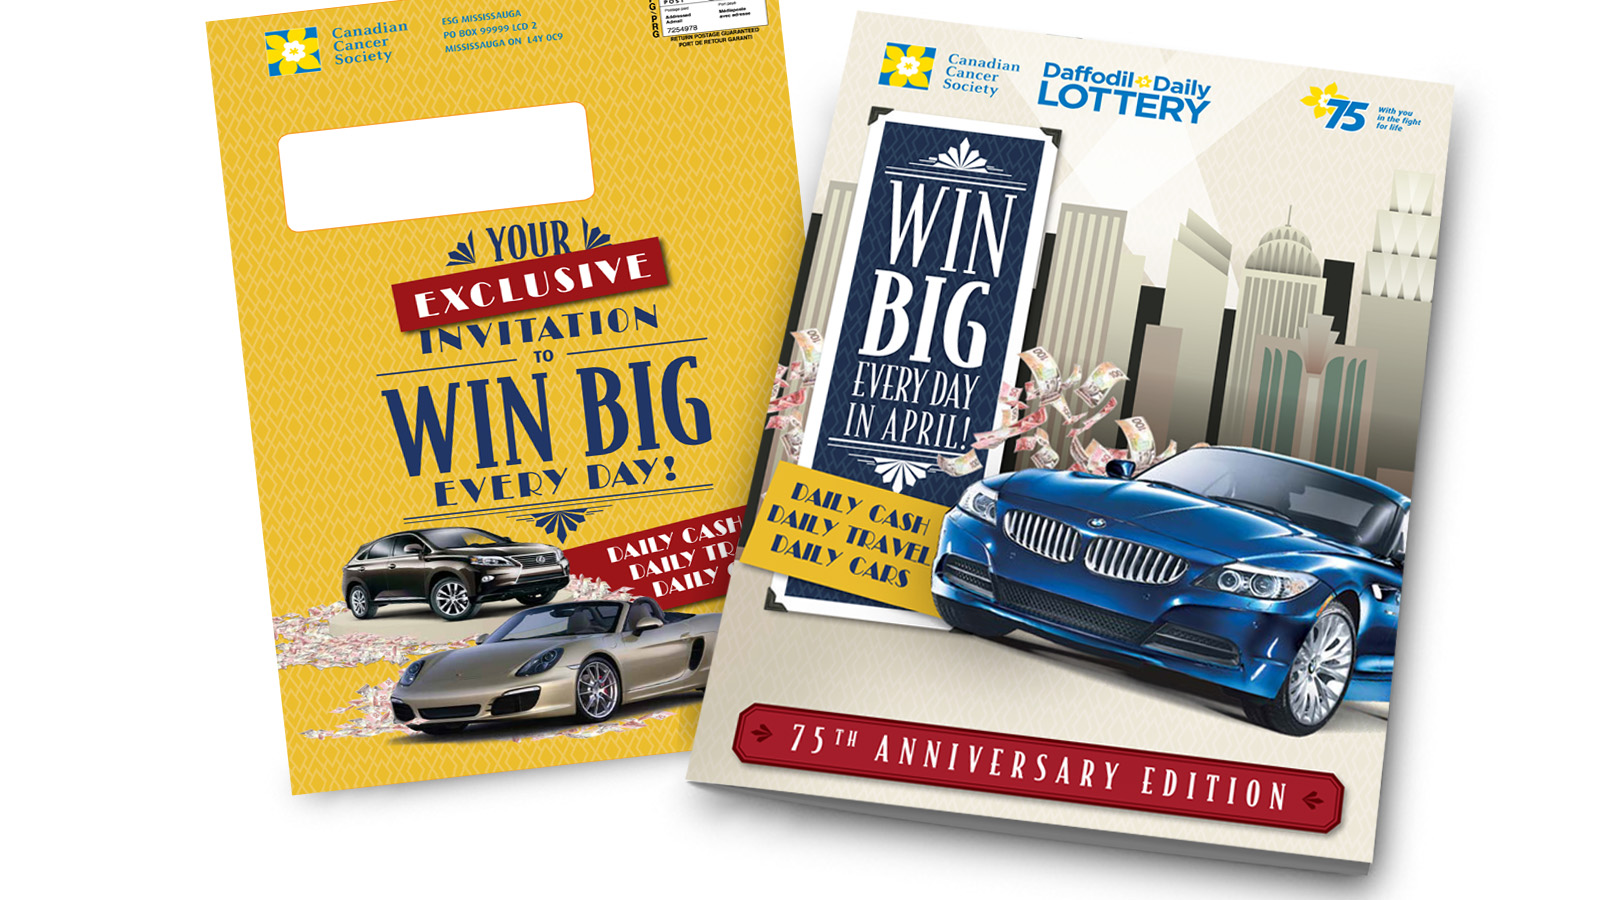 Canadian Cancer Society Lottery | Lottery Campaigns | Direct Marketing